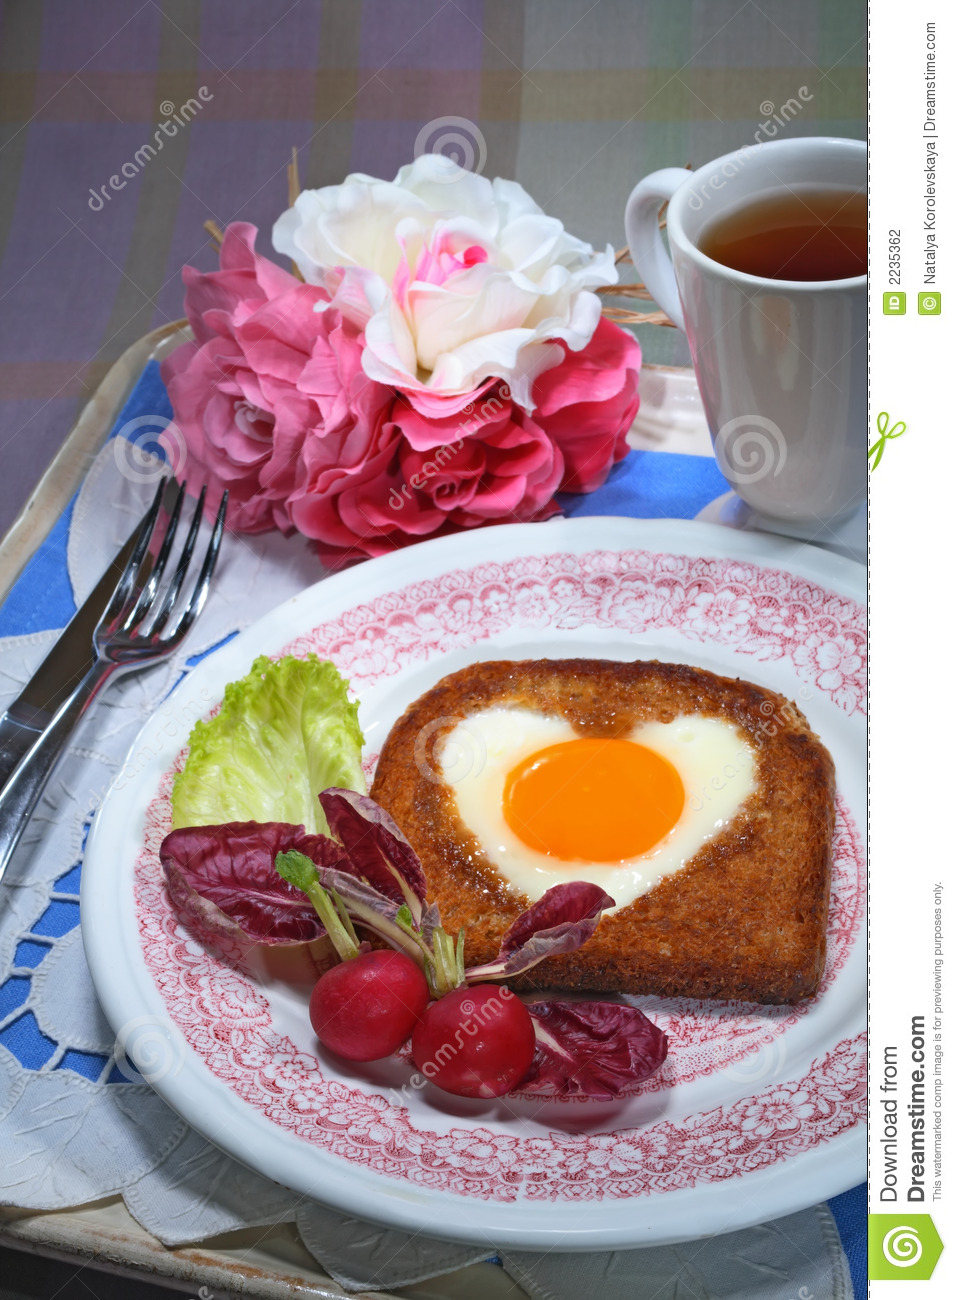 3d Animation Animals Wallpaper Romantic Breakfast Stock Photography Image 2235362